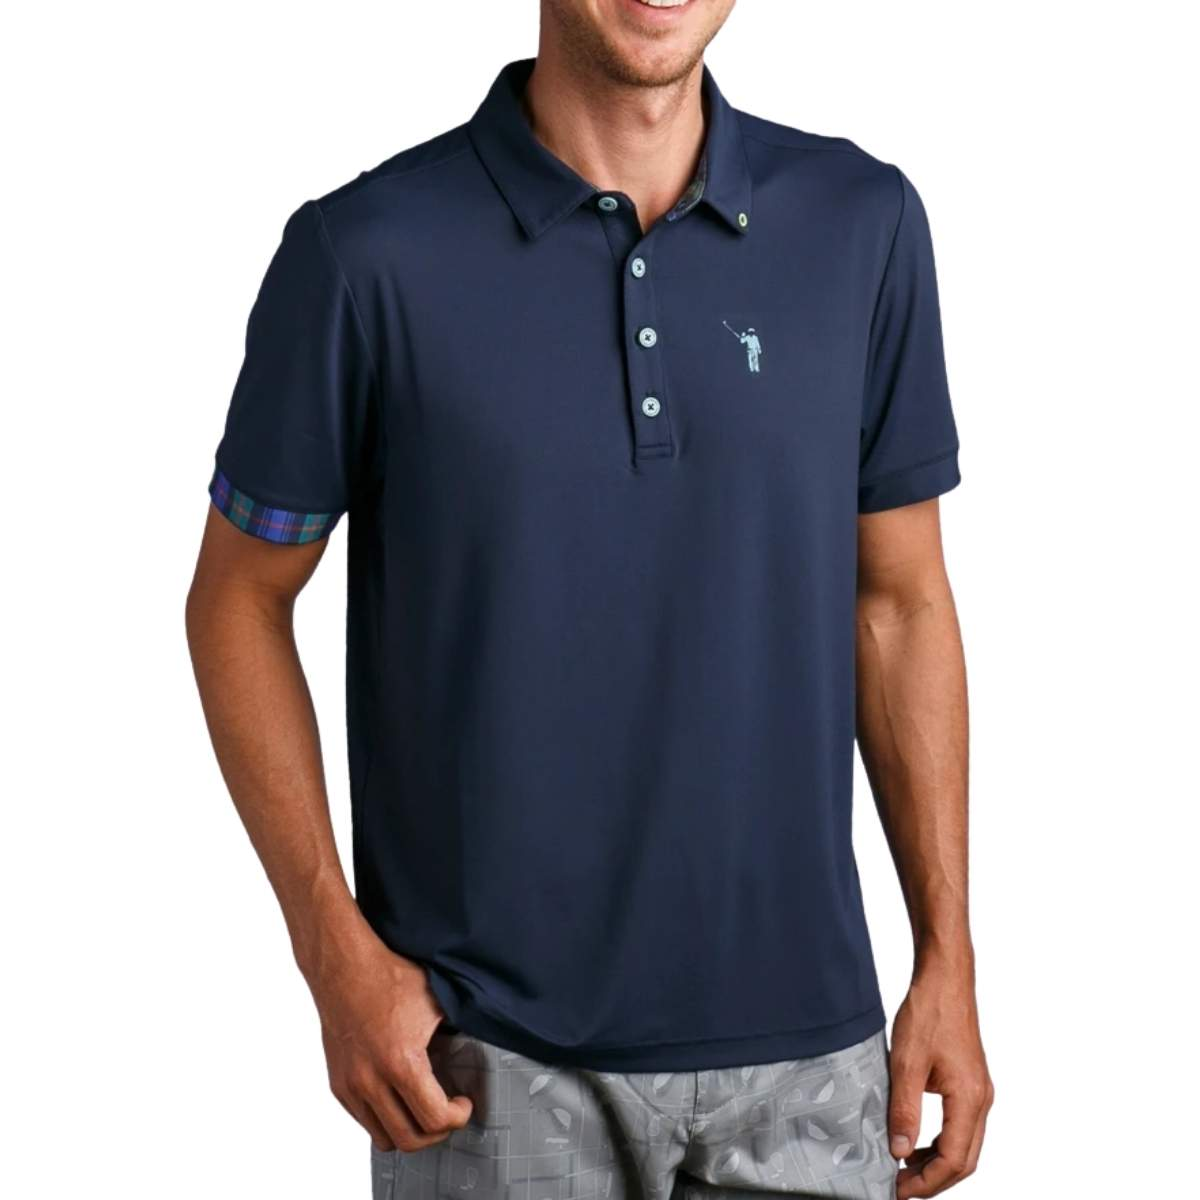 William Murray Classic Solid Navy Polo